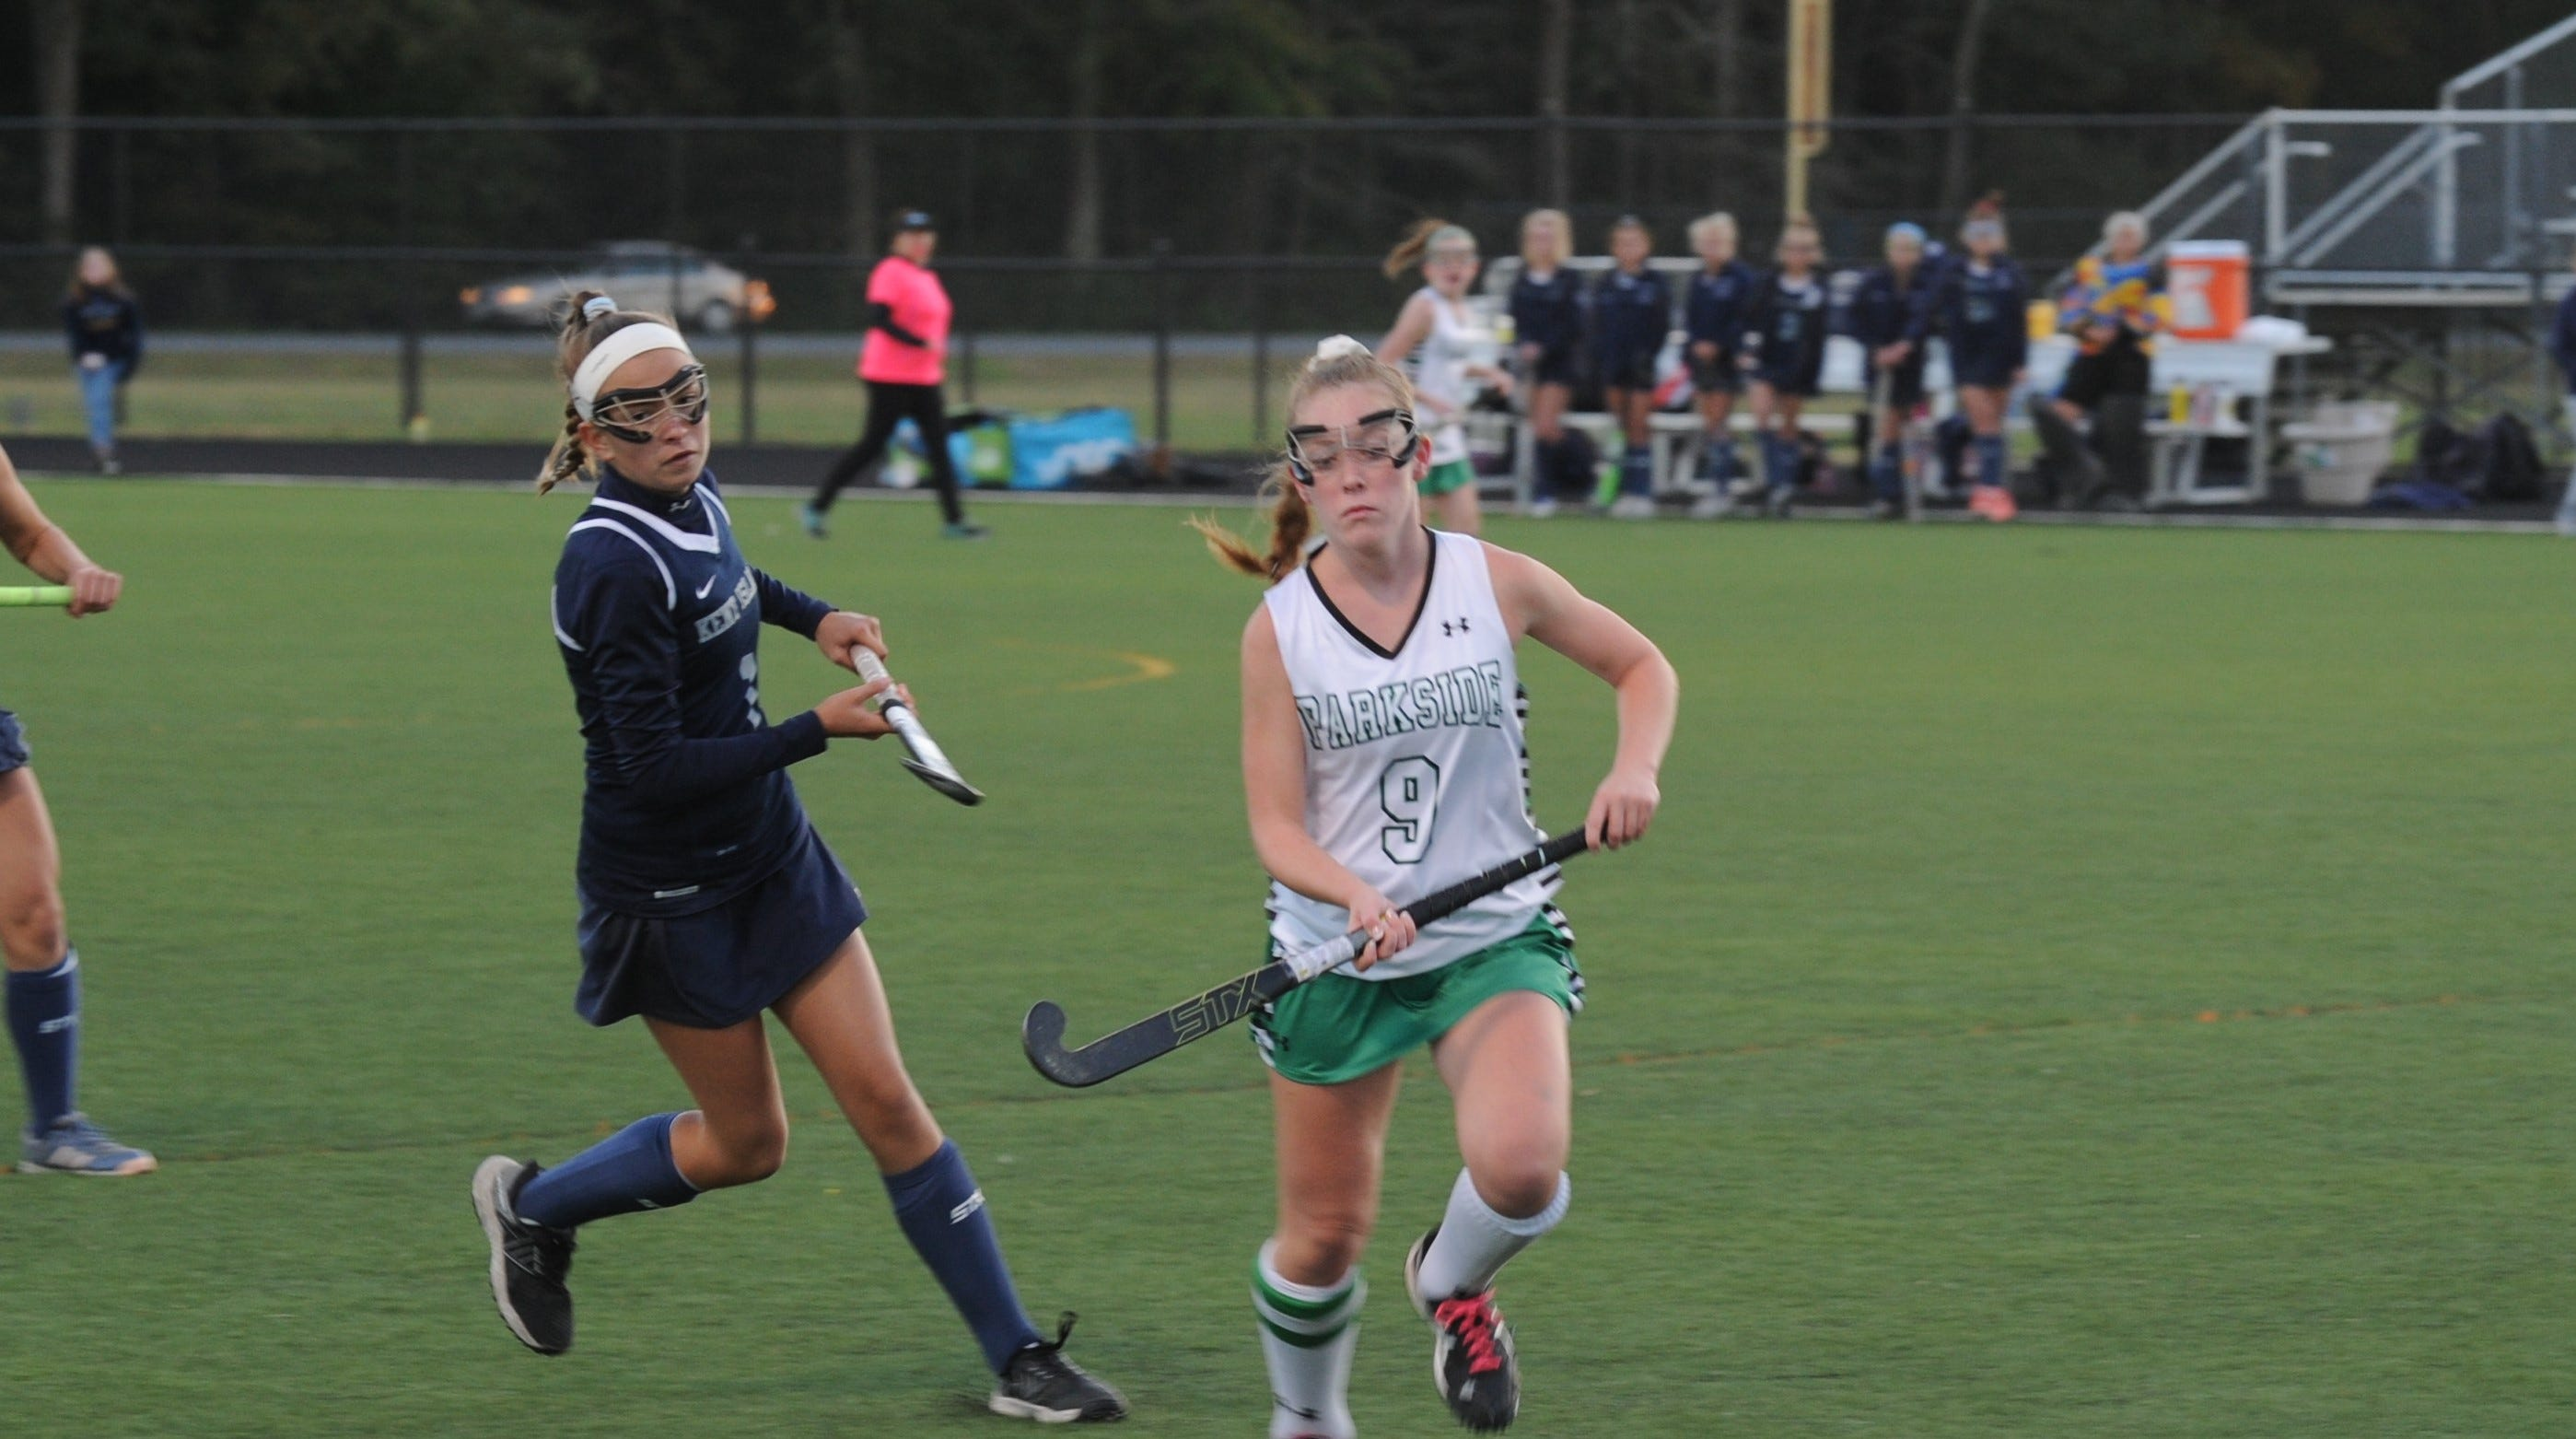 Parkside's Maura Mears sprints towards the ball against Kent Island on Monday, Oct. 22, 2018 during the Bayside Championship for field hockey.